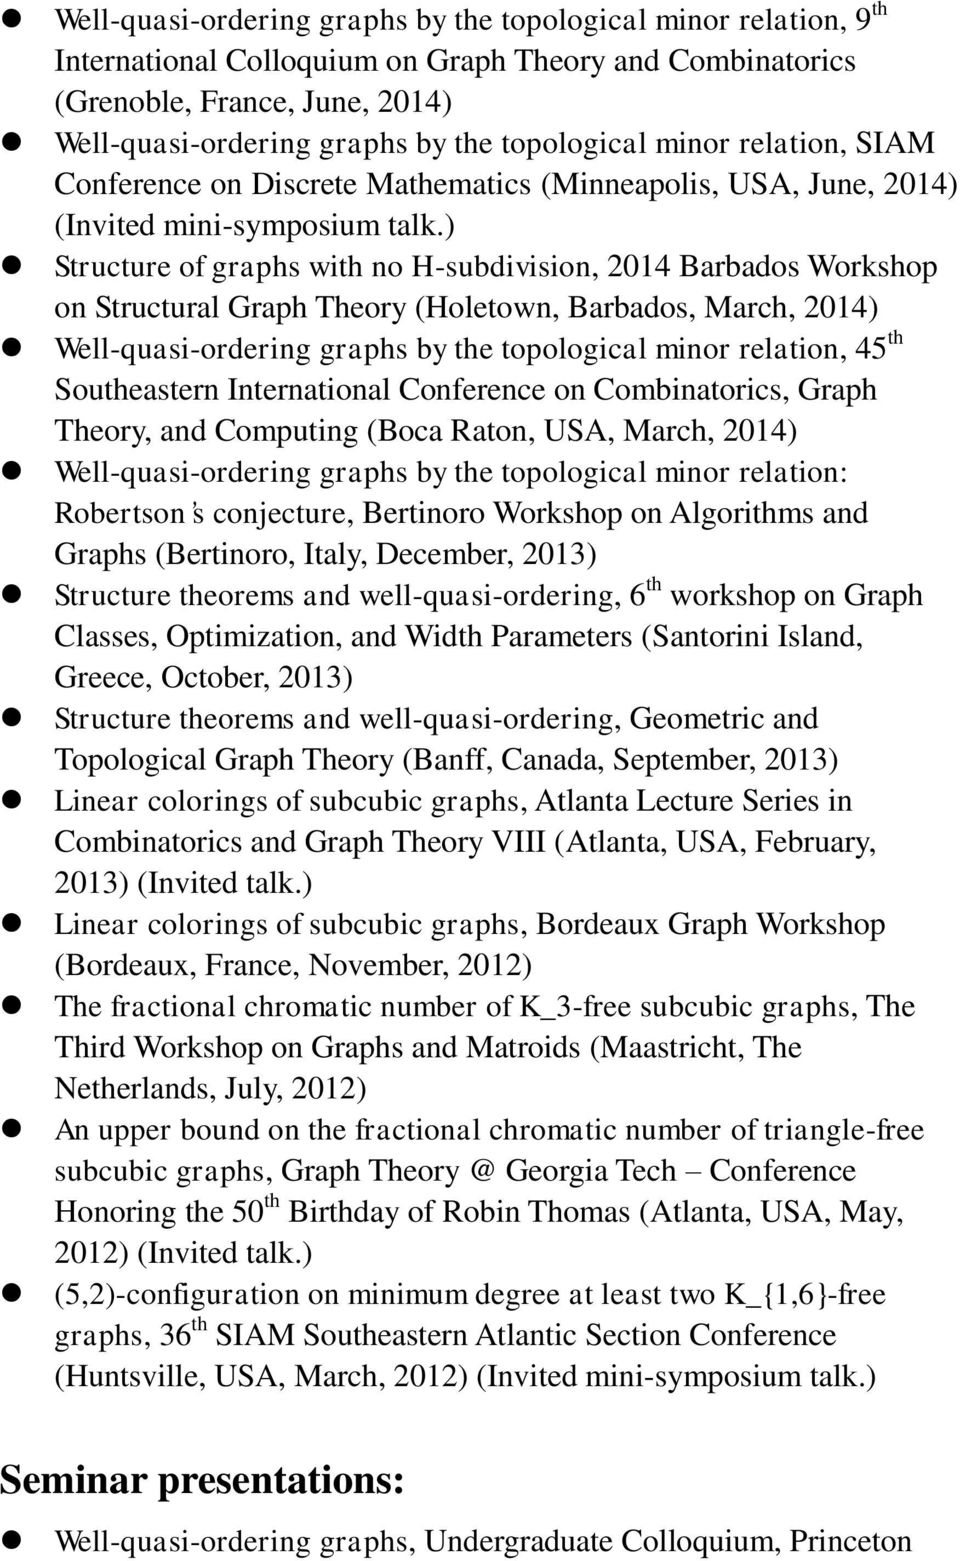 ) Structure of graphs with no H-subdivision, 2014 Barbados Workshop on Structural Graph Theory (Holetown, Barbados, March, 2014) Well-quasi-ordering graphs by the topological minor relation, 45 th